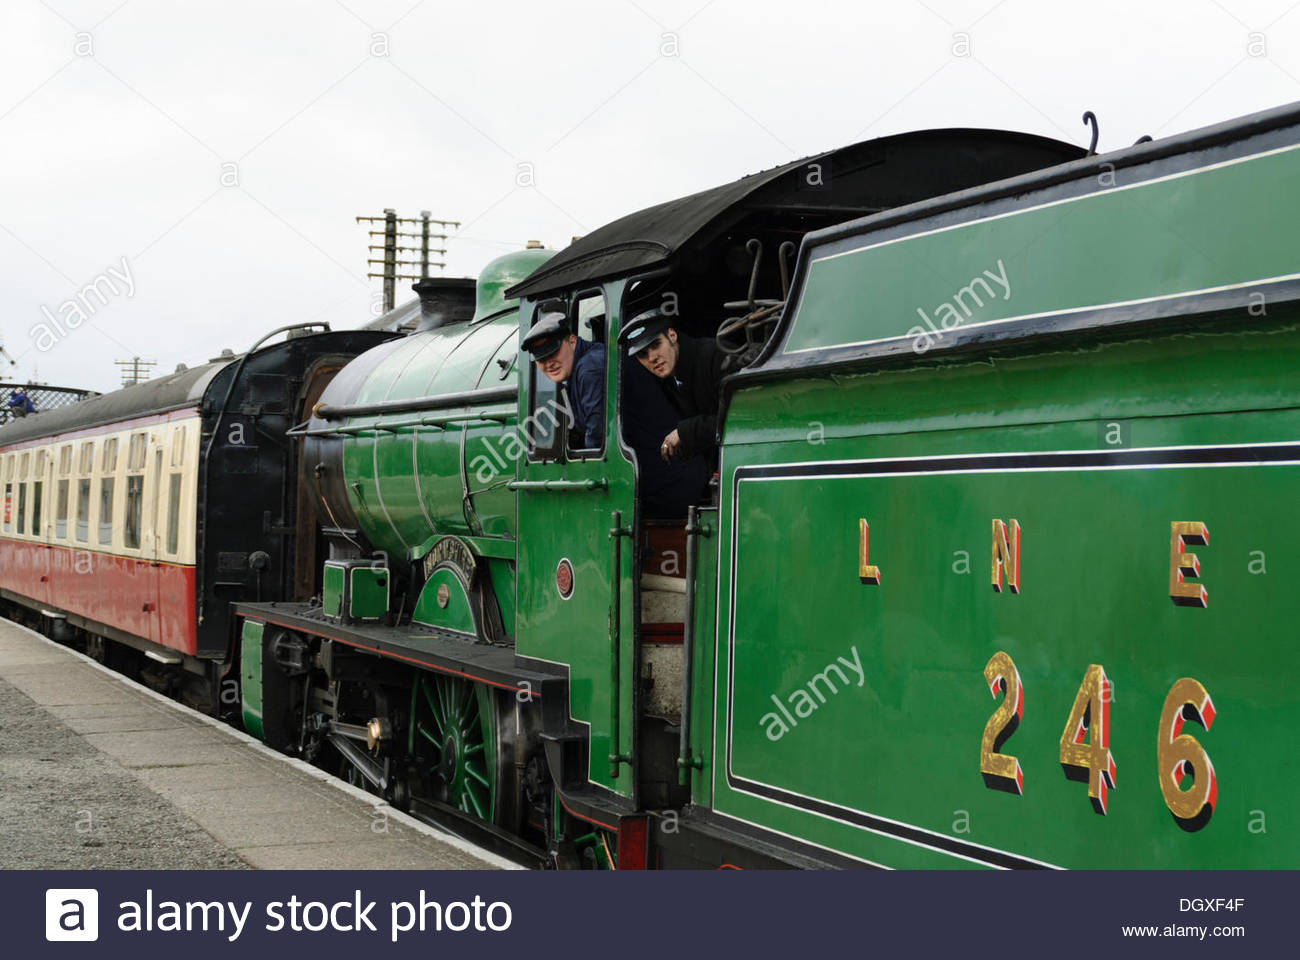 Sunday October 27 2013 LNER 4 0 Class D49 Morayshire No246 Hundreds Of People Turned Out For The Steam N Scream Halloween Weekend Organised By